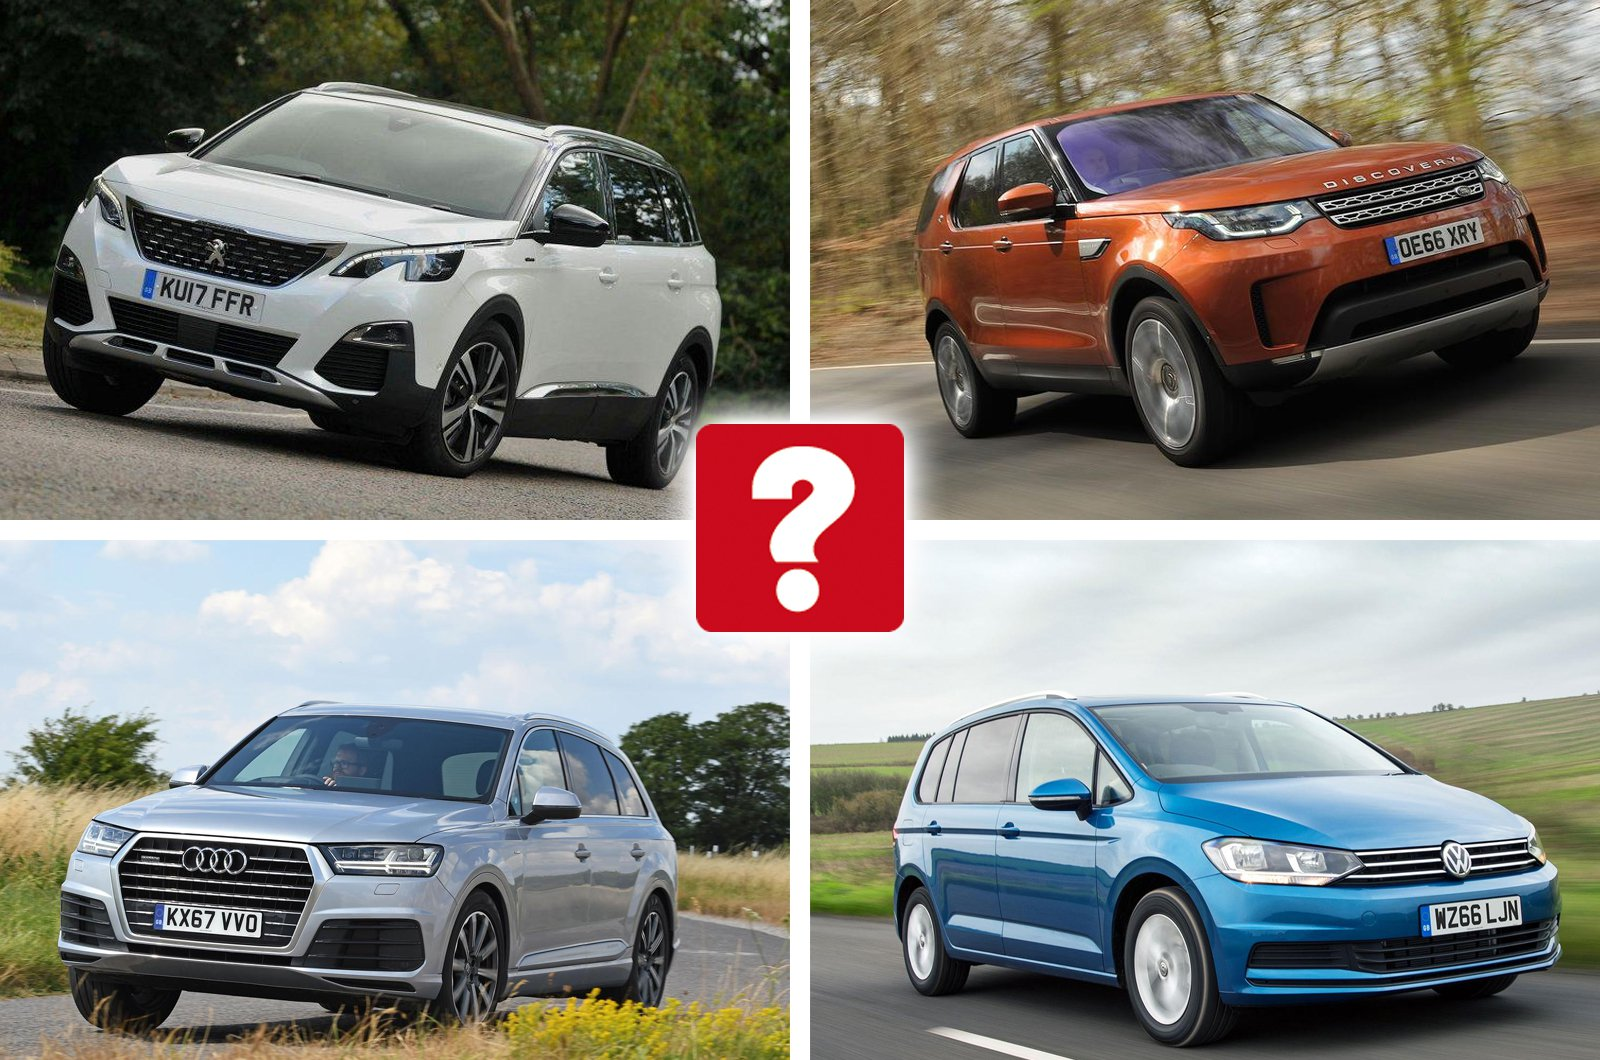 Peugeot 5008, Land Rover Discovery, Audi Q7, Volkswagen Touran